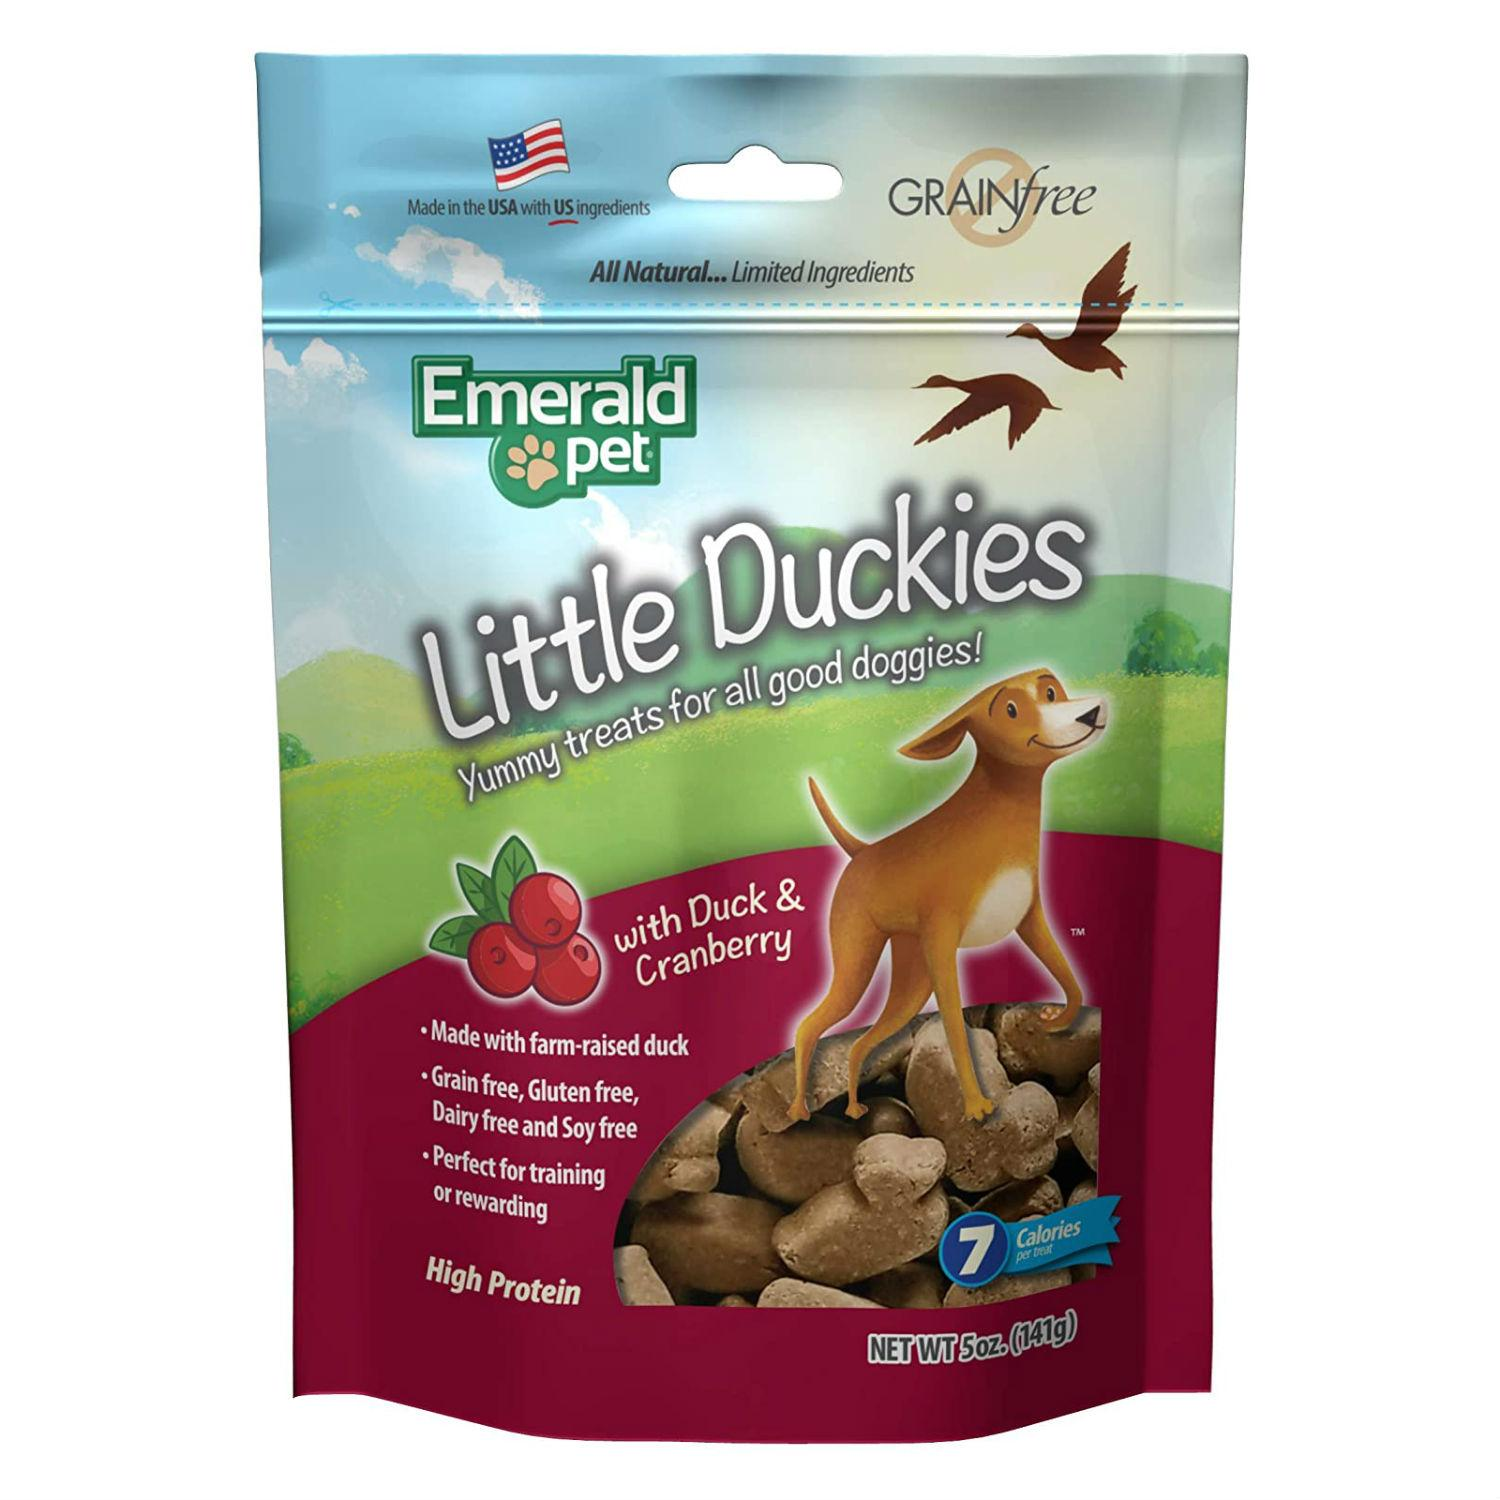 Emerald Pet Grain Free Little Duckies Dog Treat - Duck and Cranberry